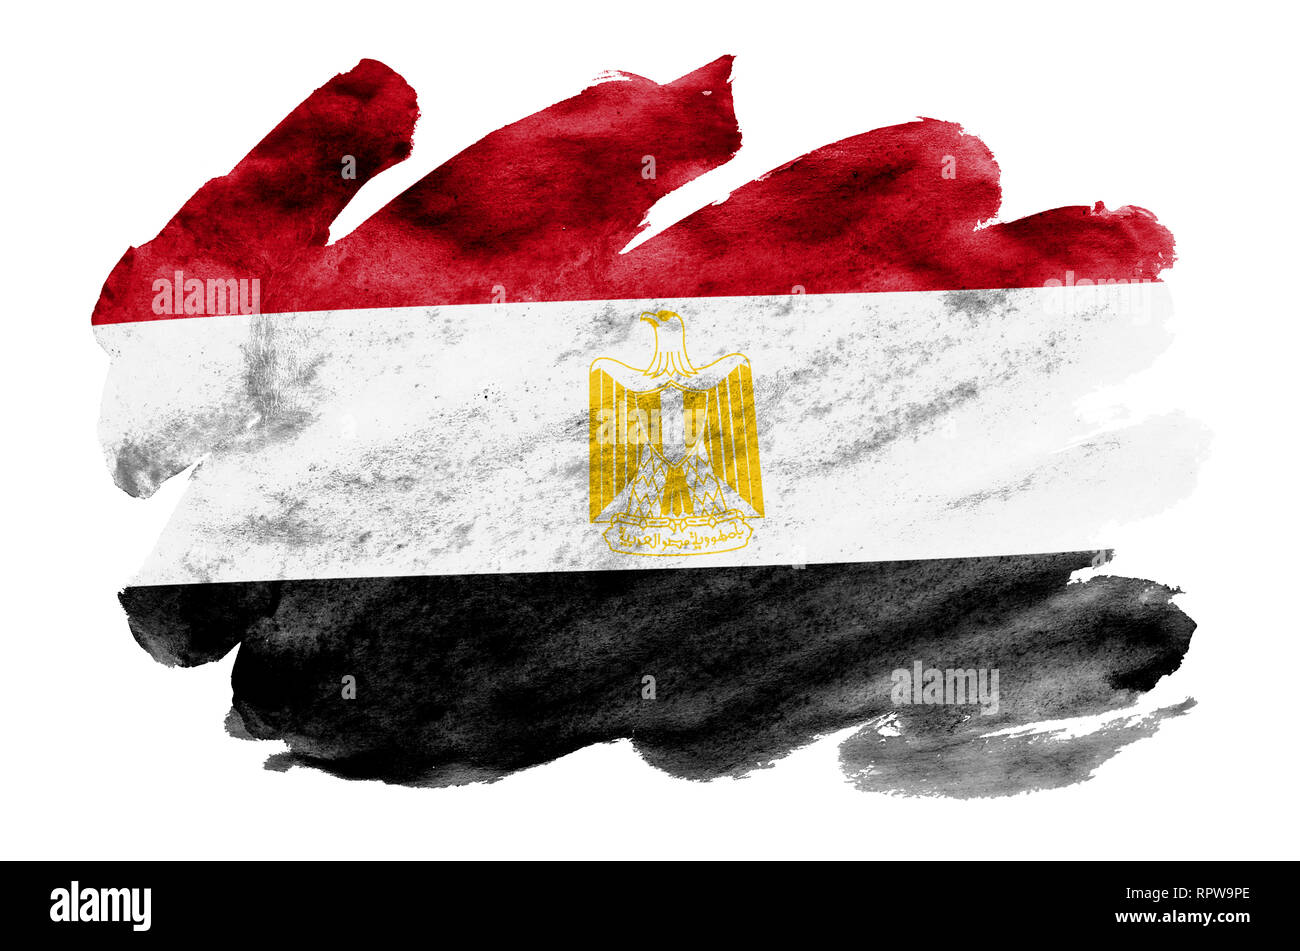 Egypt flag  is depicted in liquid watercolor style isolated on white background. Careless paint shading with image of national flag. Independence Day  - Stock Image